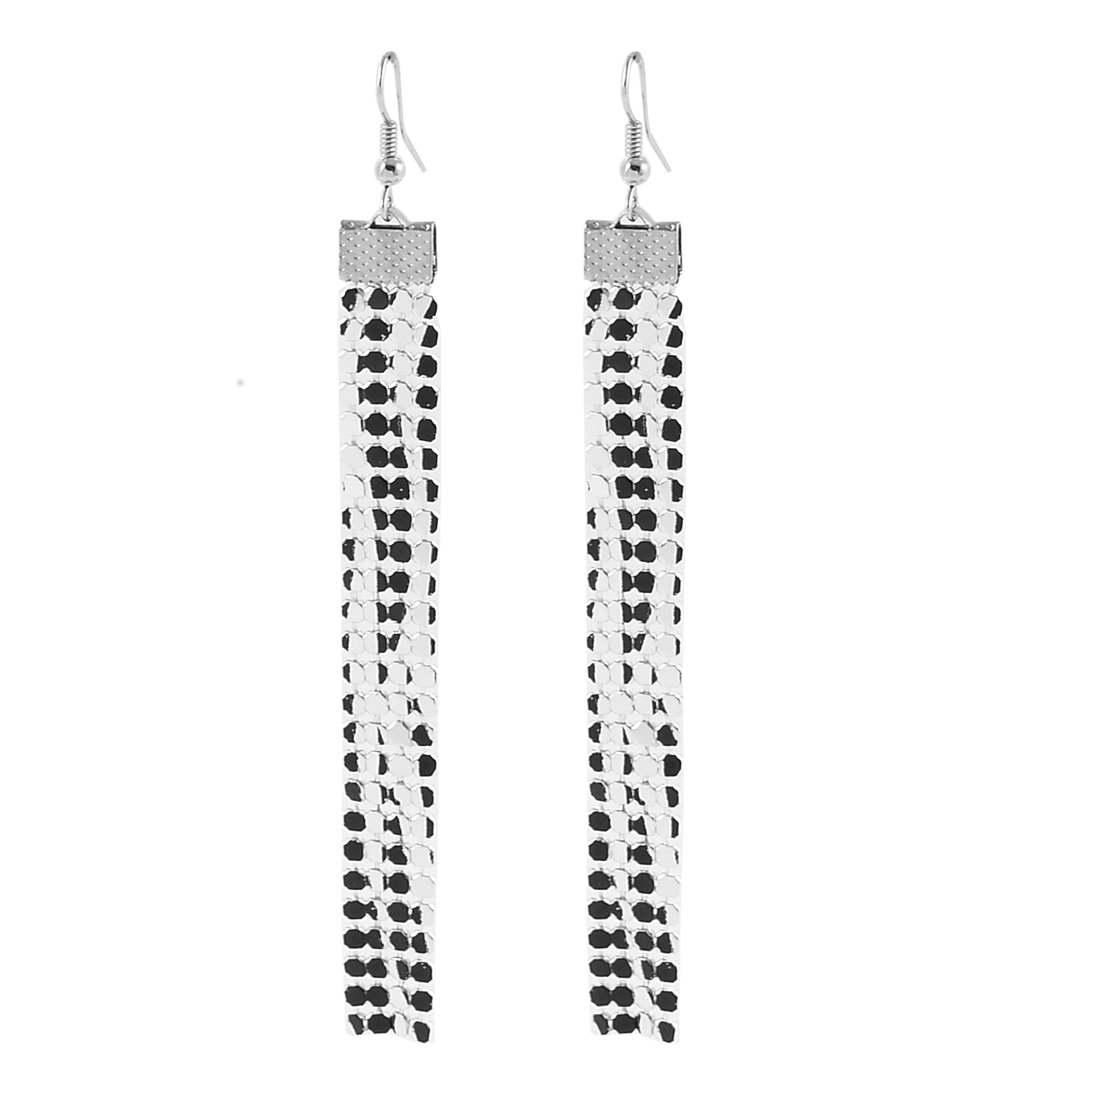 Fashion Jewelry Long Shiny Sequin Cluster Dangle Earrings Pair Black Silver Tone